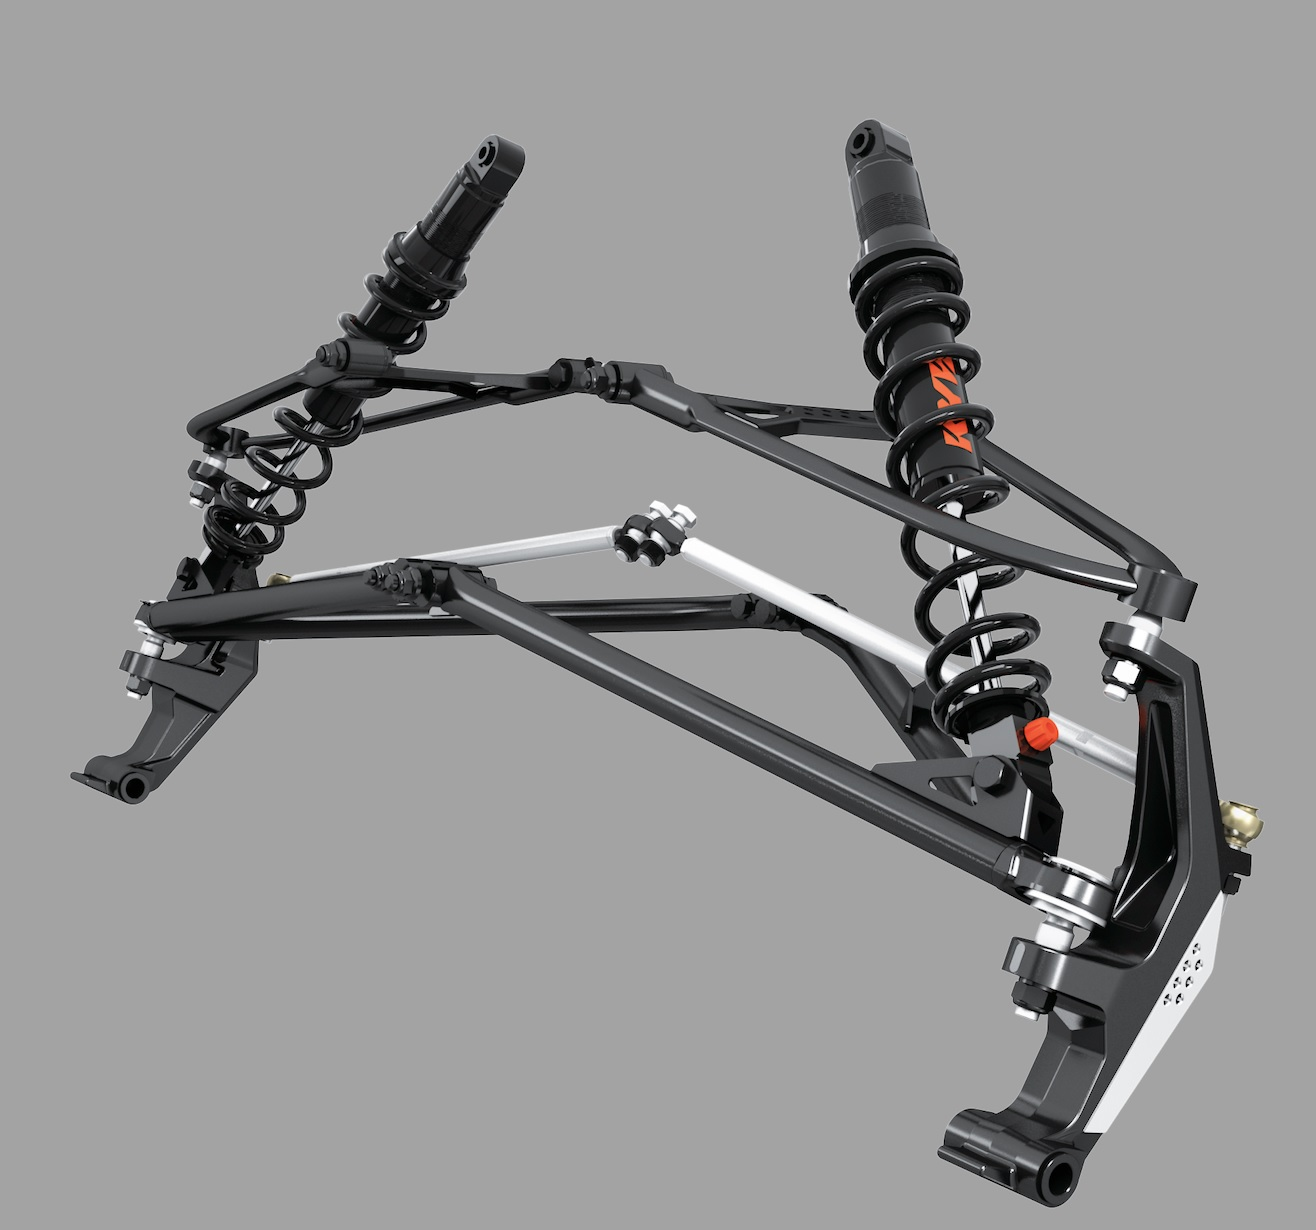 BRP Offers RAS 2 Front Suspension Kits for Rev-X Chassis